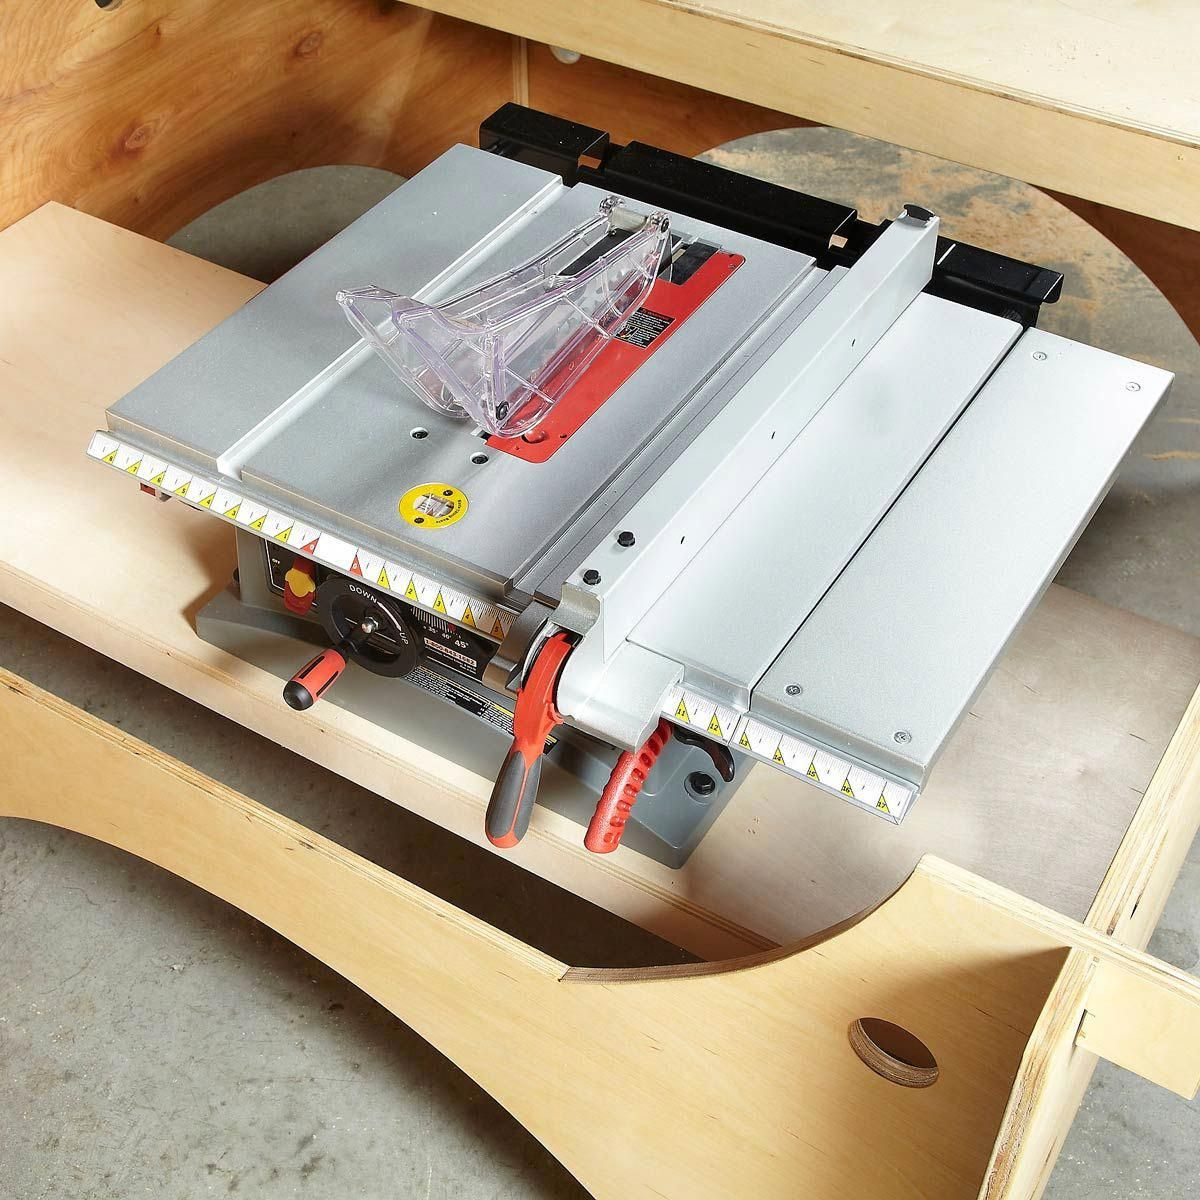 Setting Up Shop Hand Power Tools Diy table saw, Table